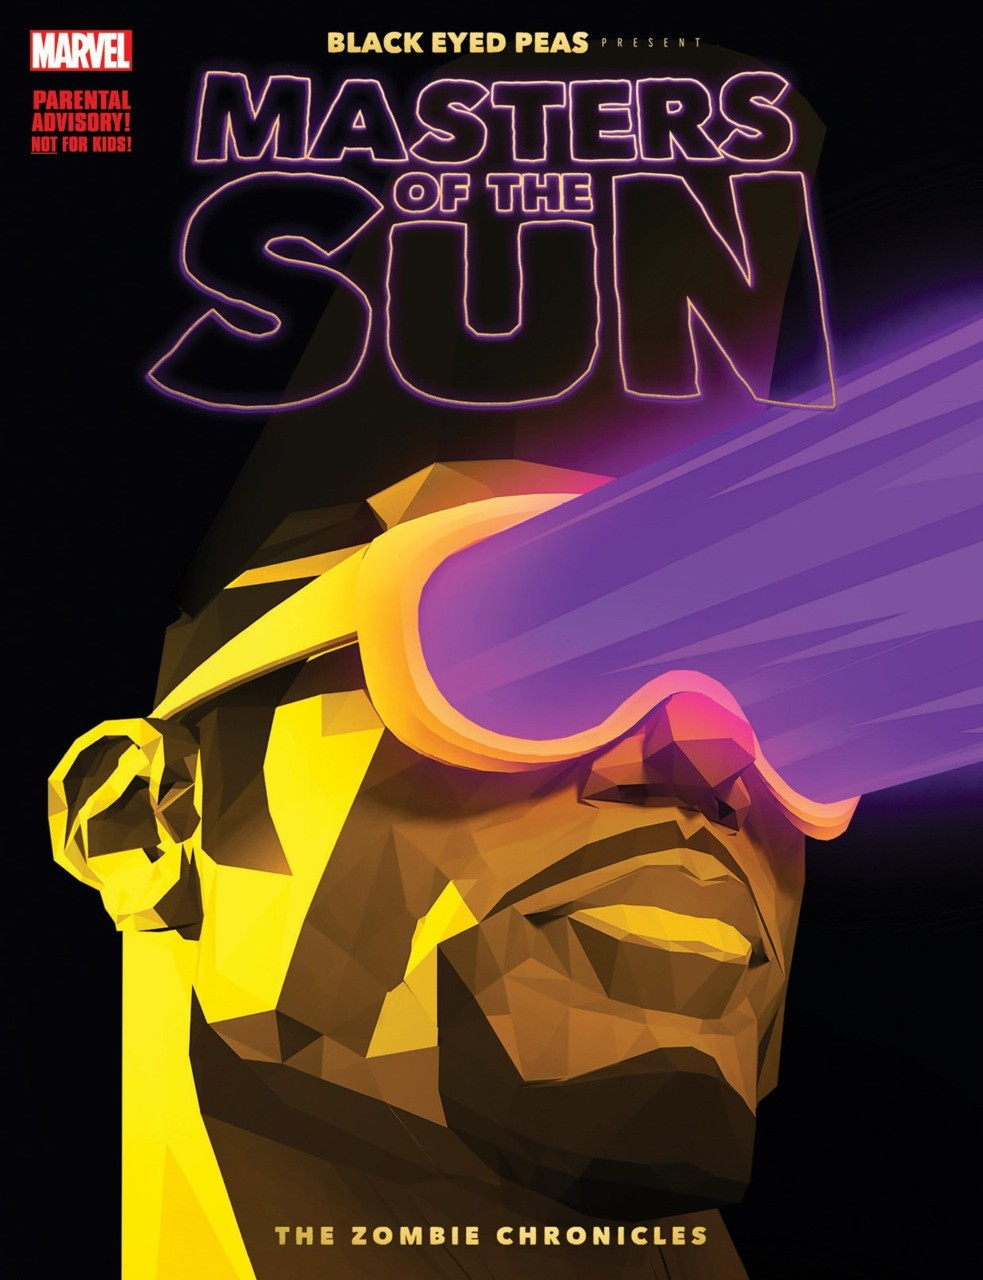 Black Eyed Peas Present: Masters of the Sun: The Zombie Chronicles sun tzu the art of war the ancient classic